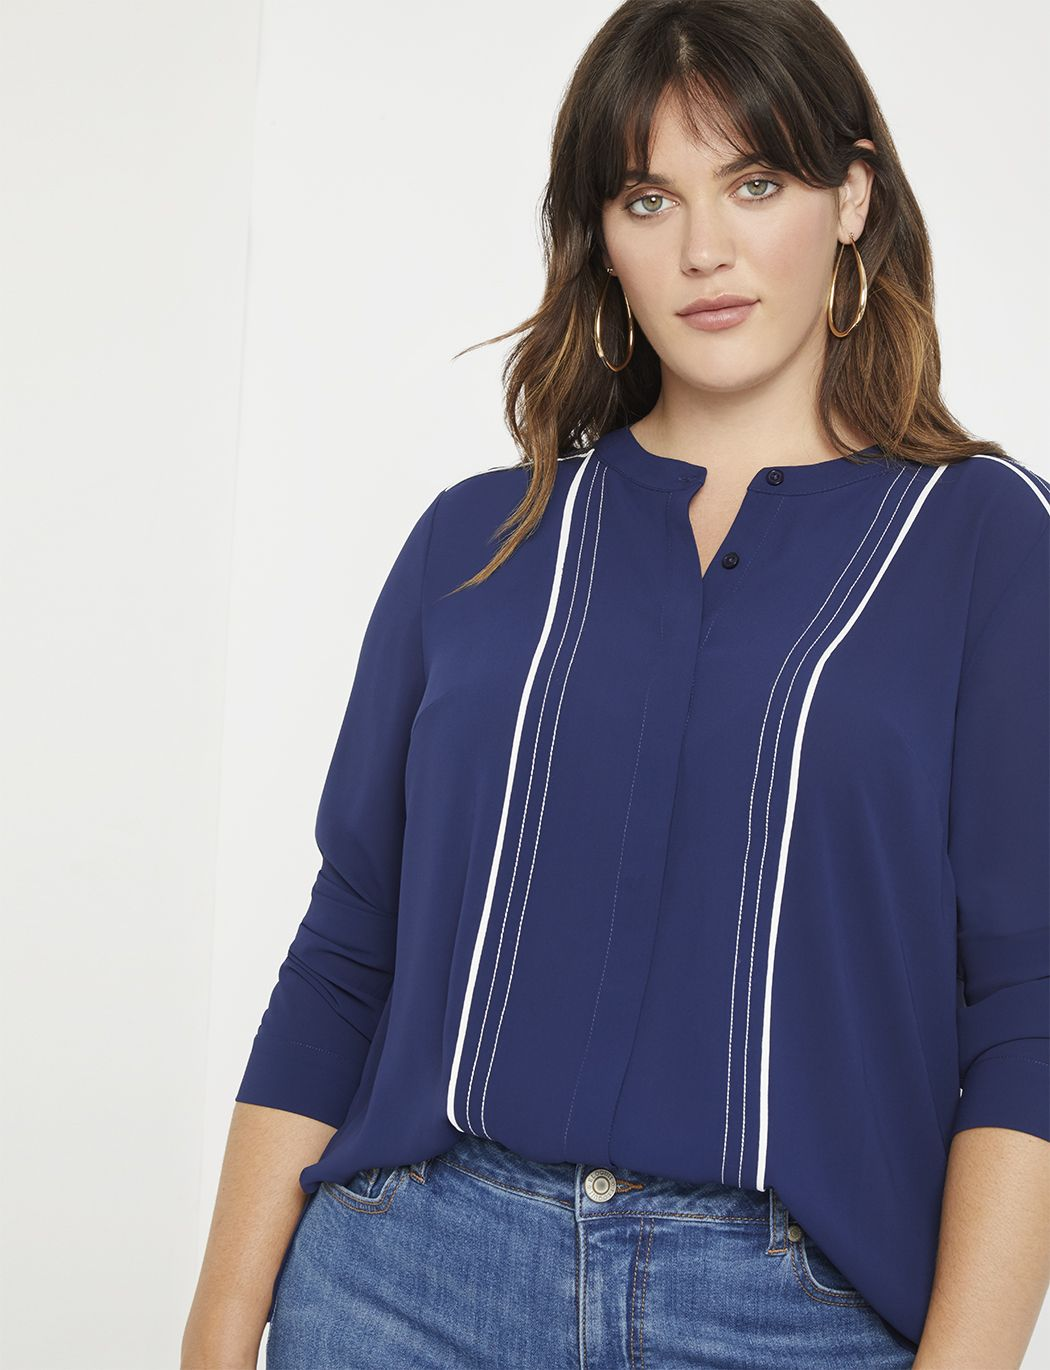 Contrast Piped Blouse | Women's Plus Size Tops | ELOQUII 13